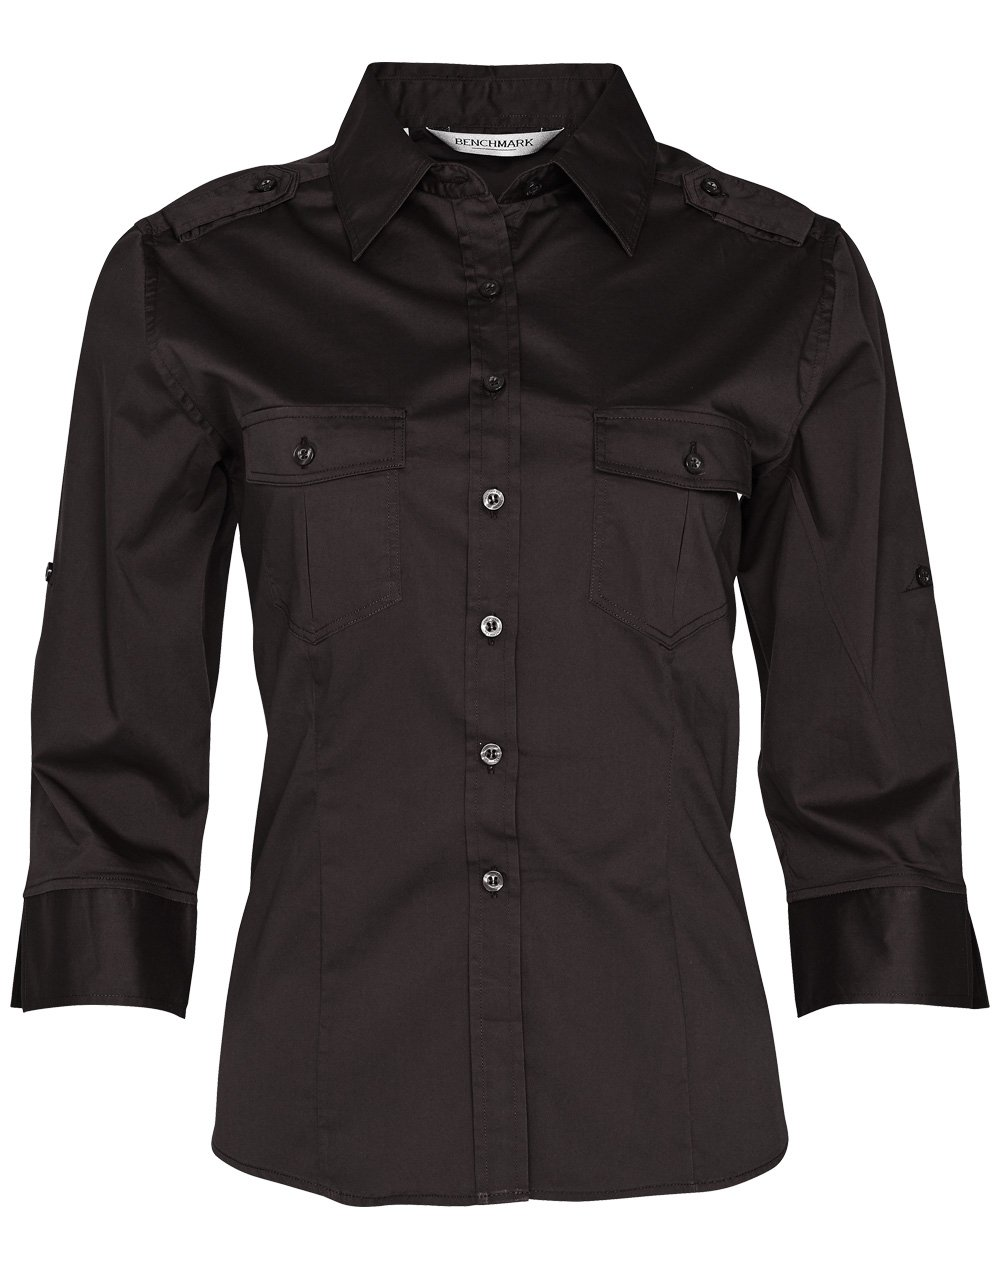 Women's 3/4 Sleeve Military Shirt